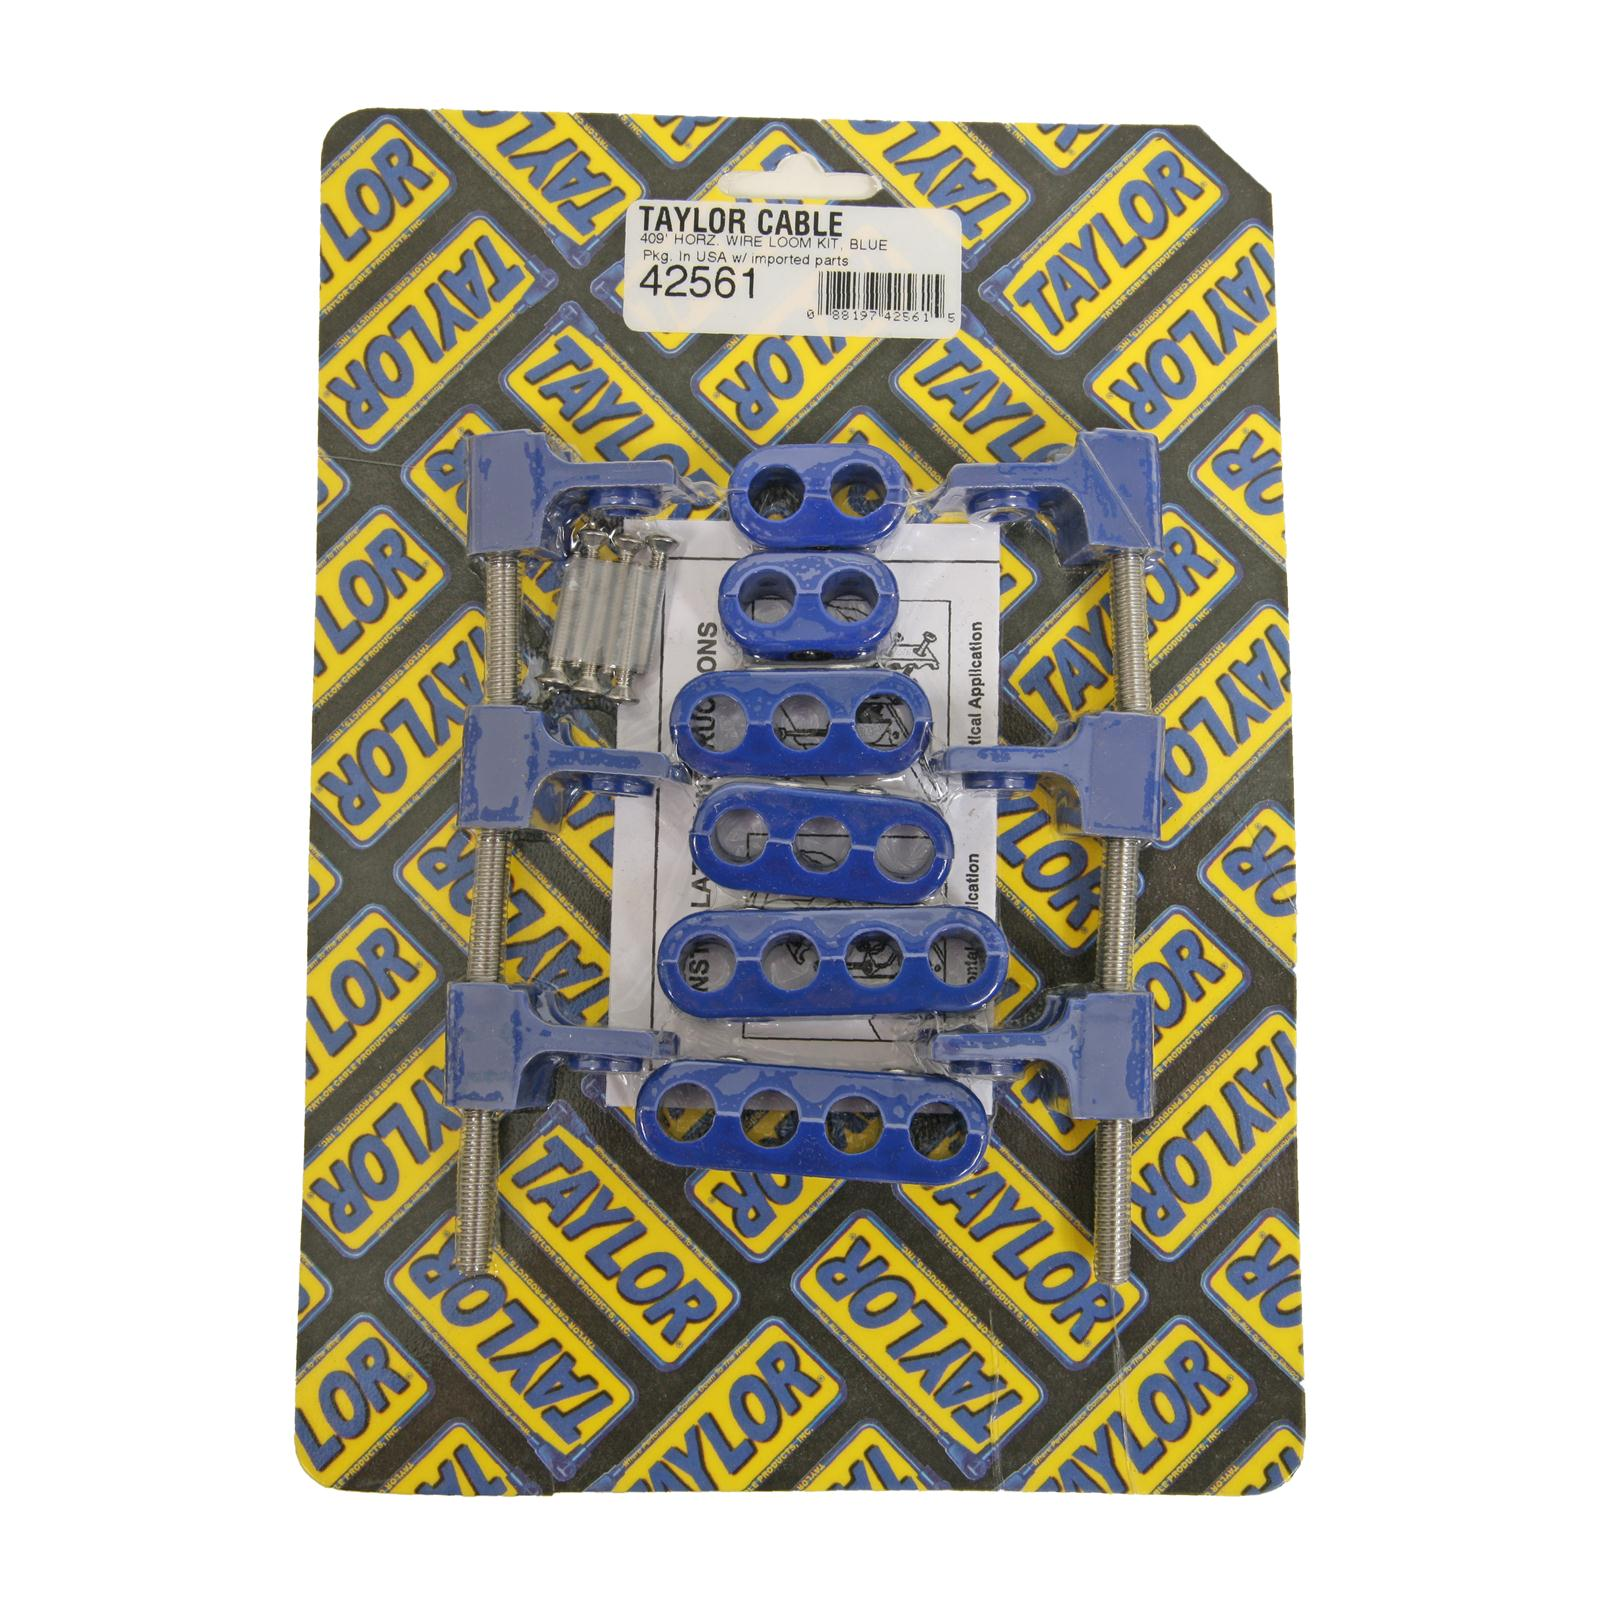 Taylor V8 Horizontal Wire Loom Kits 42561 - Free Shipping on Orders ...